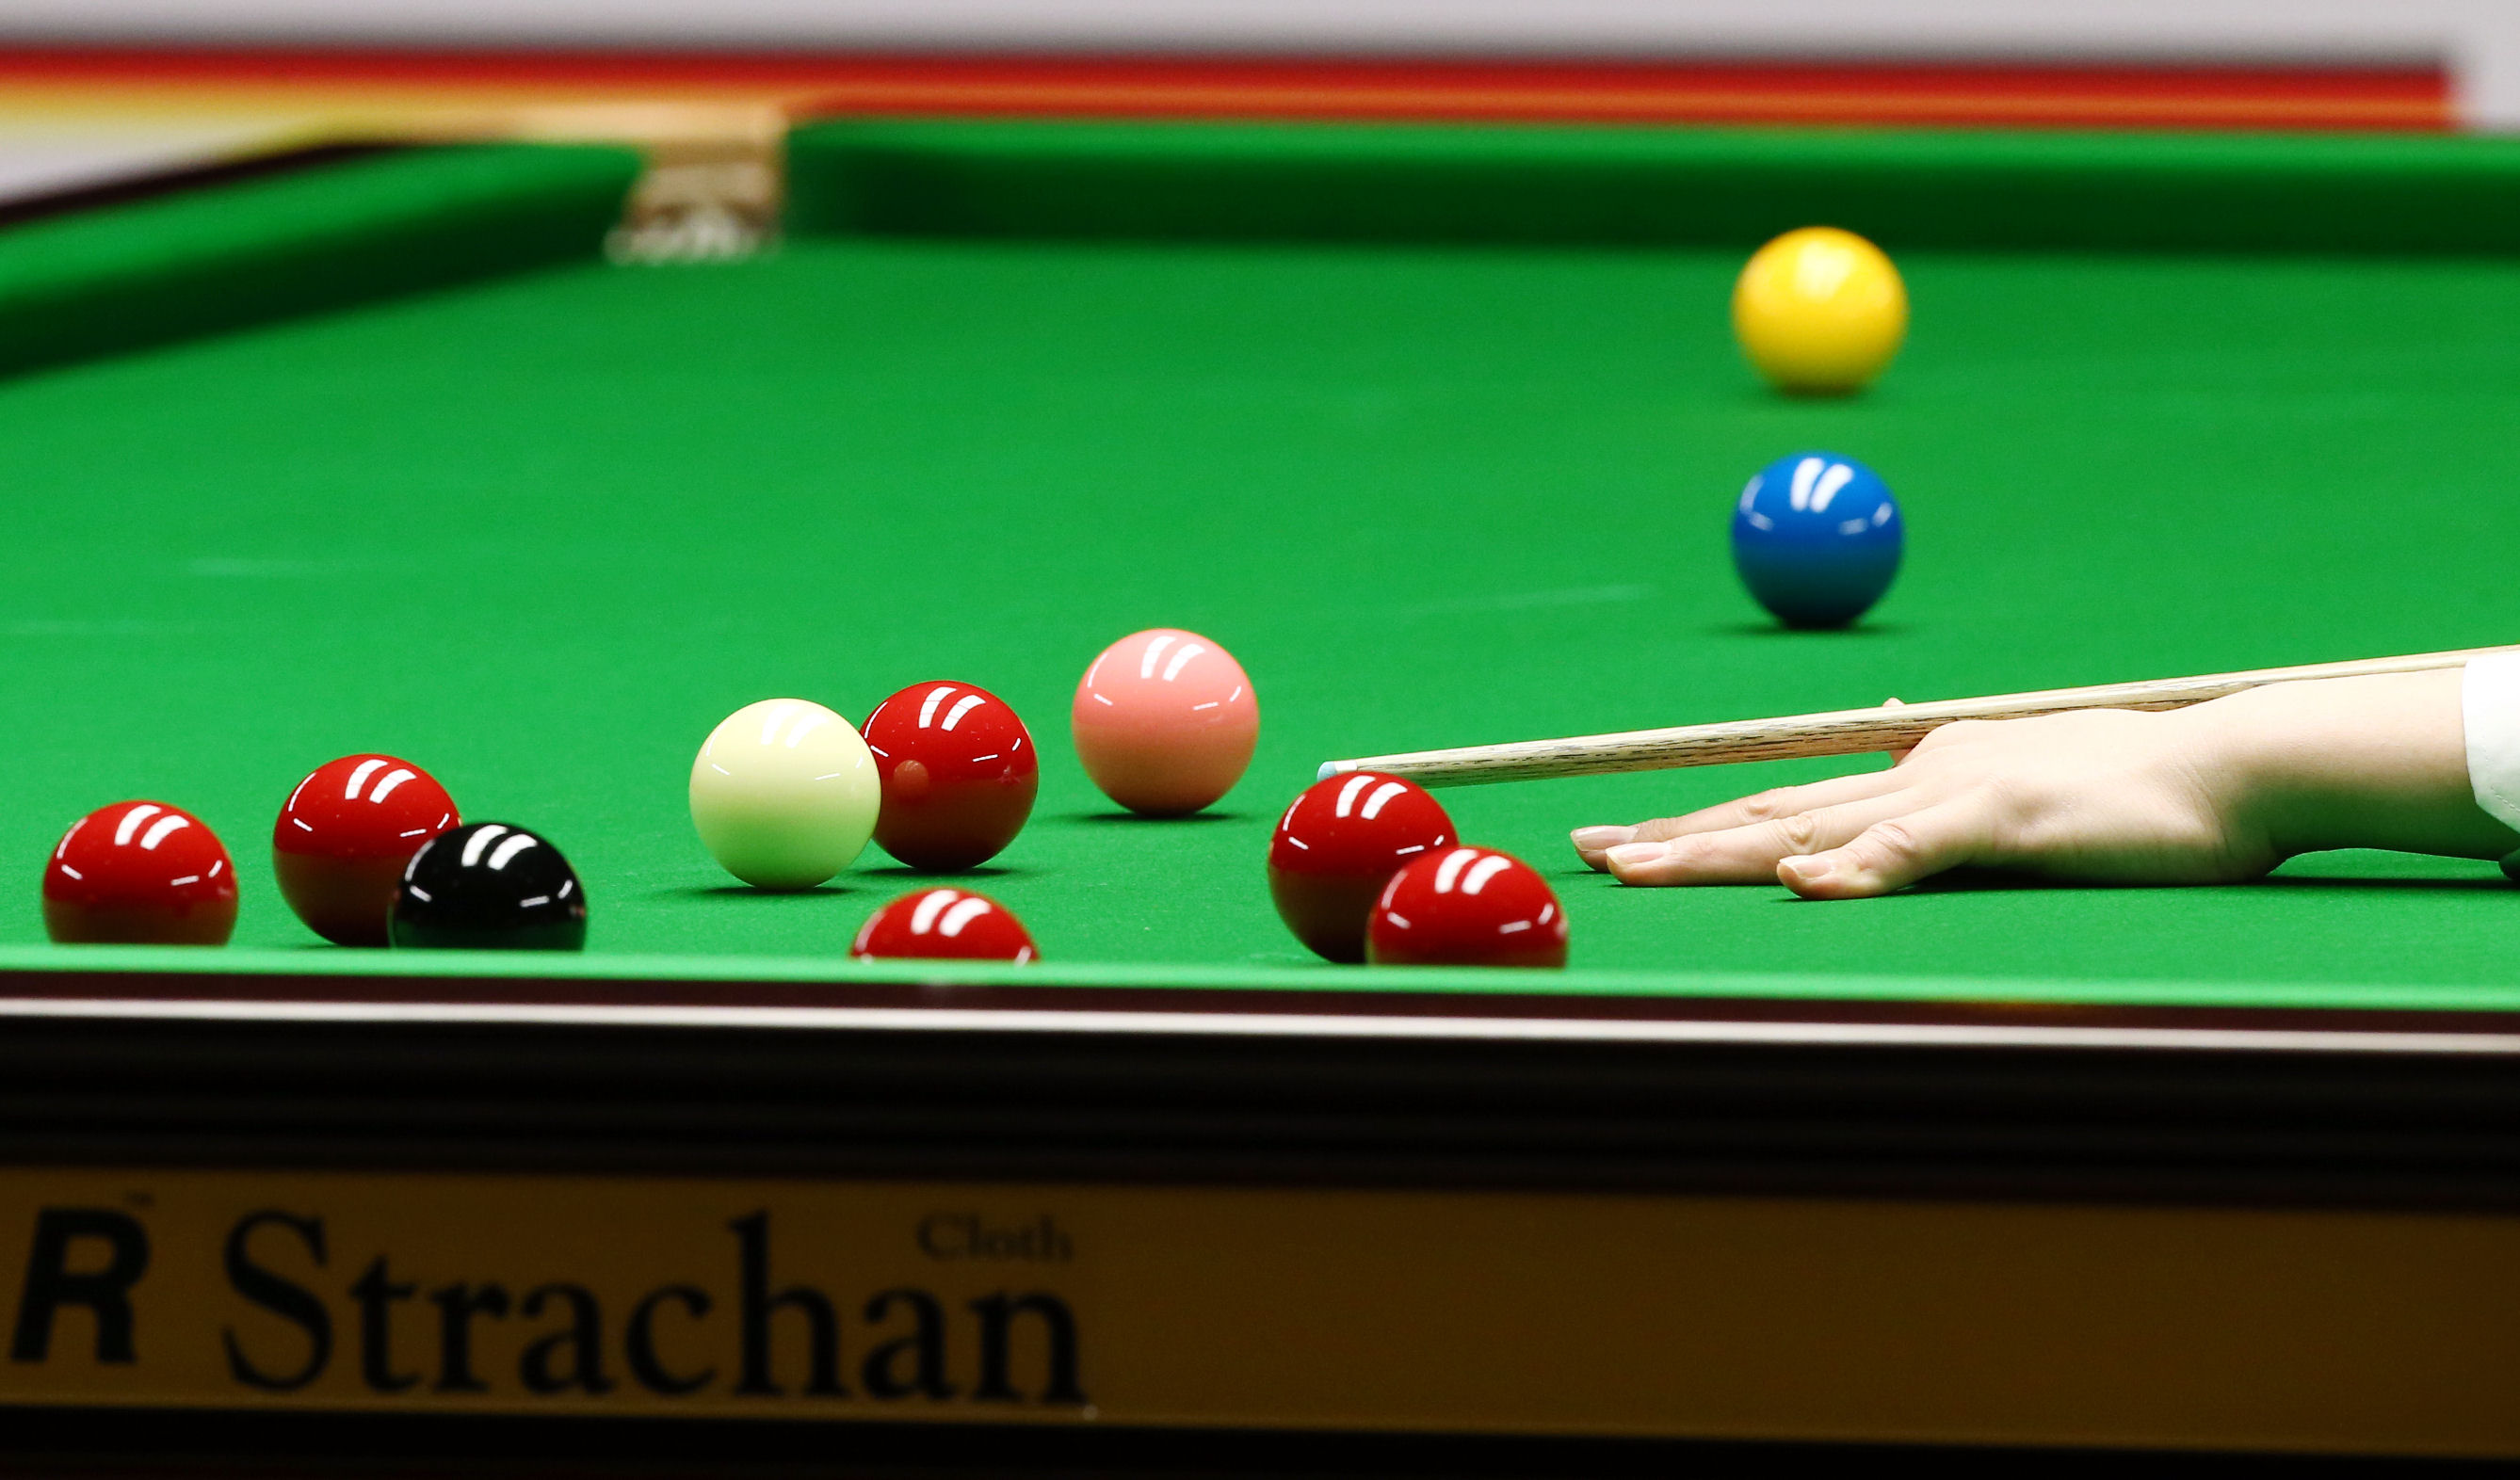 Snooker Ranked Fourth In Integrity Index - World Snooker